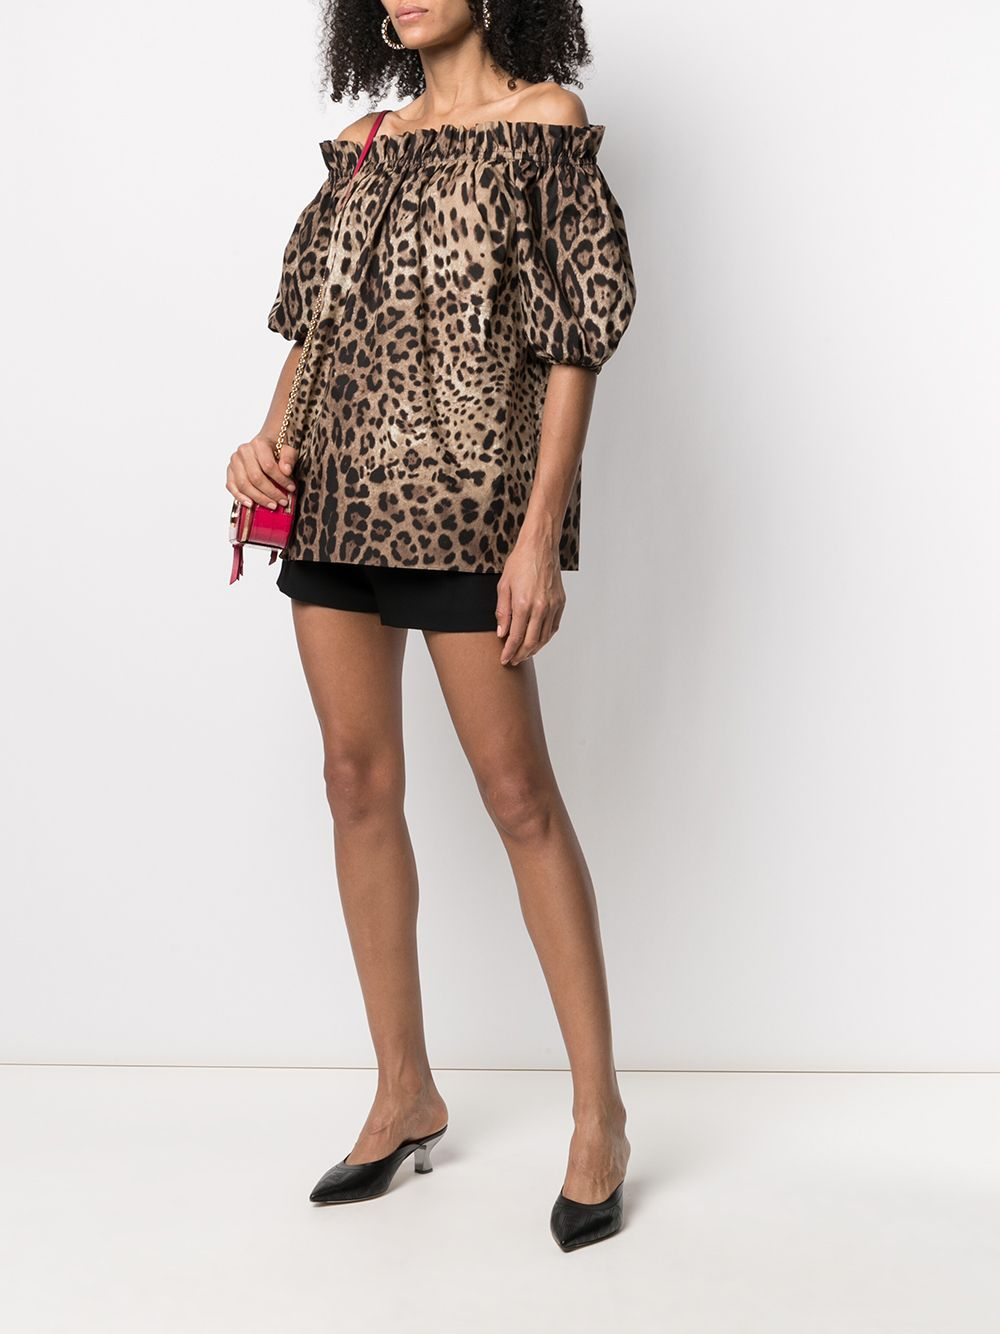 Leopard-print cotton blouse with balloon sleeves DOLCE & GABBANA |  | F71J7T-HS5E3HY13M